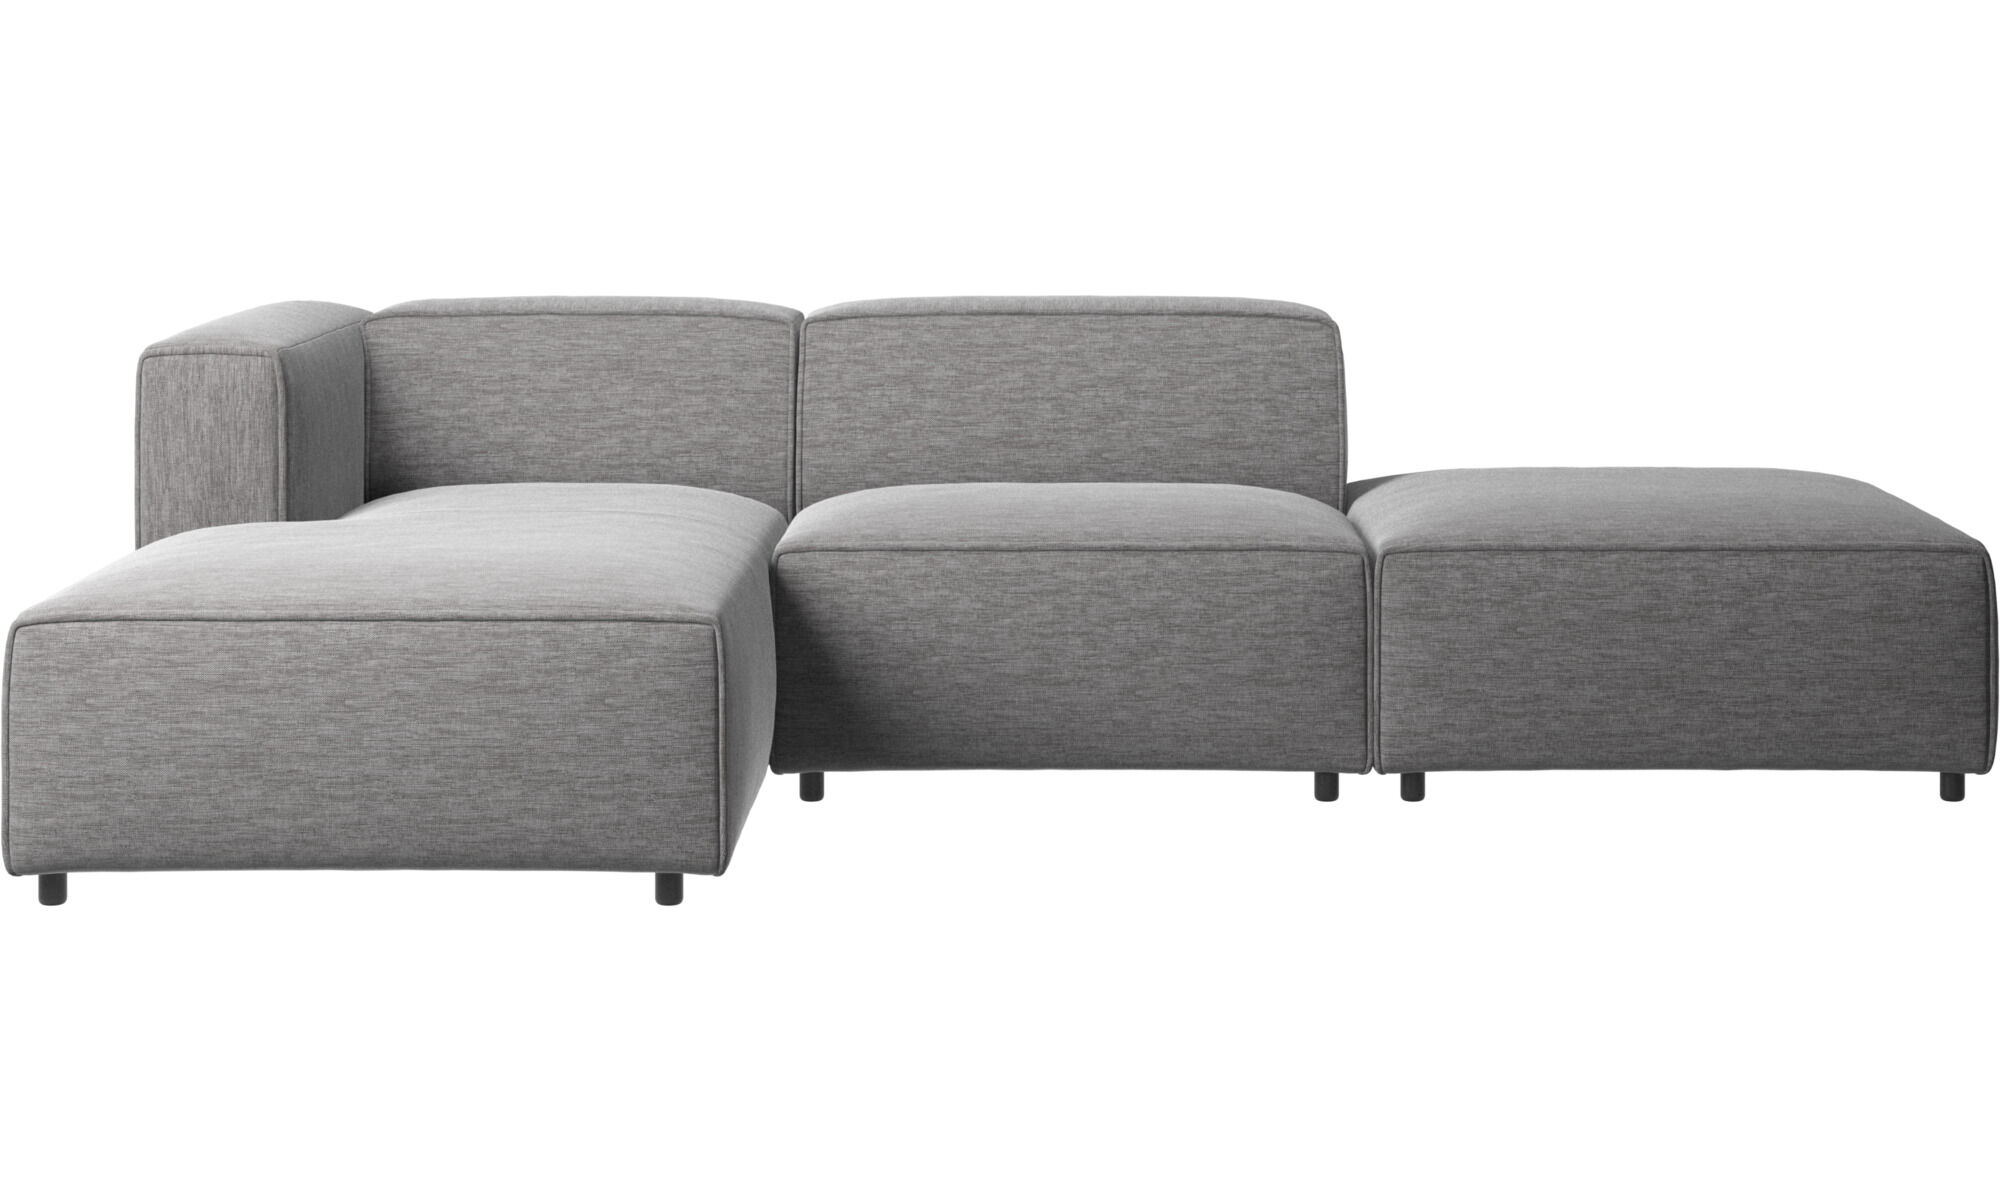 Carmo Sofa With Lounging And Resting Unit